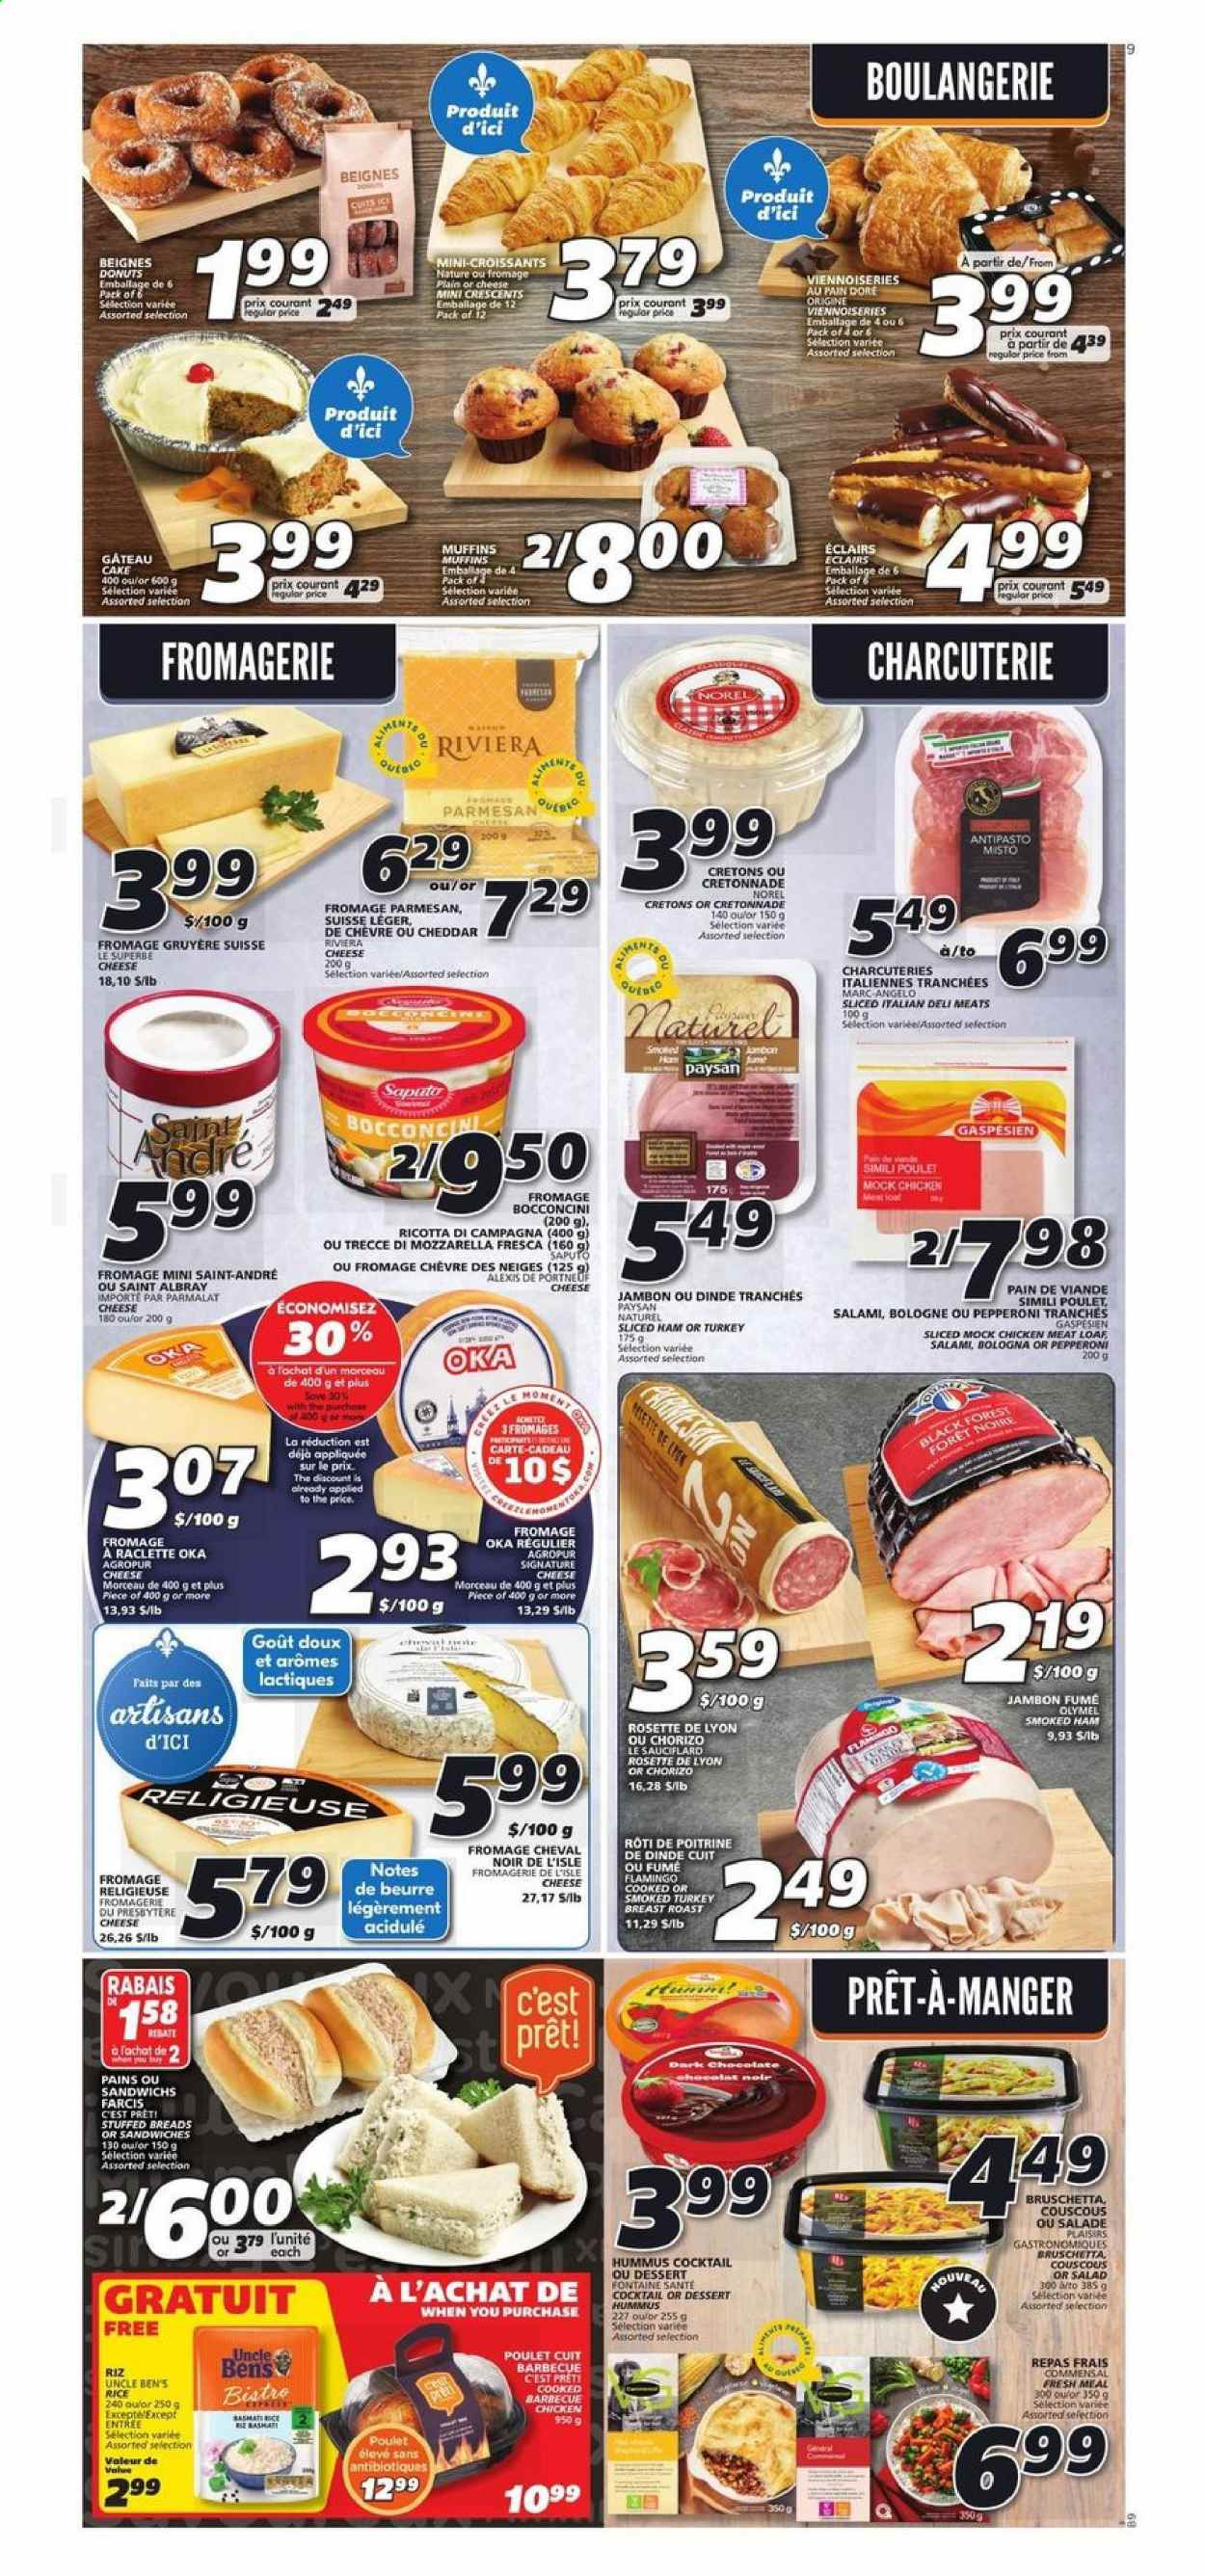 IGA Flyer - October 22, 2020 - October 28, 2020 - Sales products - bocconcini cheese, couscous, croissants, flamingo, gruyère, mozzarella, muffins, raclette cheese, rice, ricotta, salami, turkey, turkey breast, viennoiseries, ham, hummus, cheddar, chicken, pan, parmesan, pepperoni, chorizo, chocolate, cheese, cake, dessert, smoked ham, donuts, salad, poulet, viande, dinde, jambon, salade, barbecue, beurre, cadeau, éclair, fromage, gâteau, cheval, chèvre, saint albray, raclette, riz, eclairs, meat, roast, donut. Page 6.